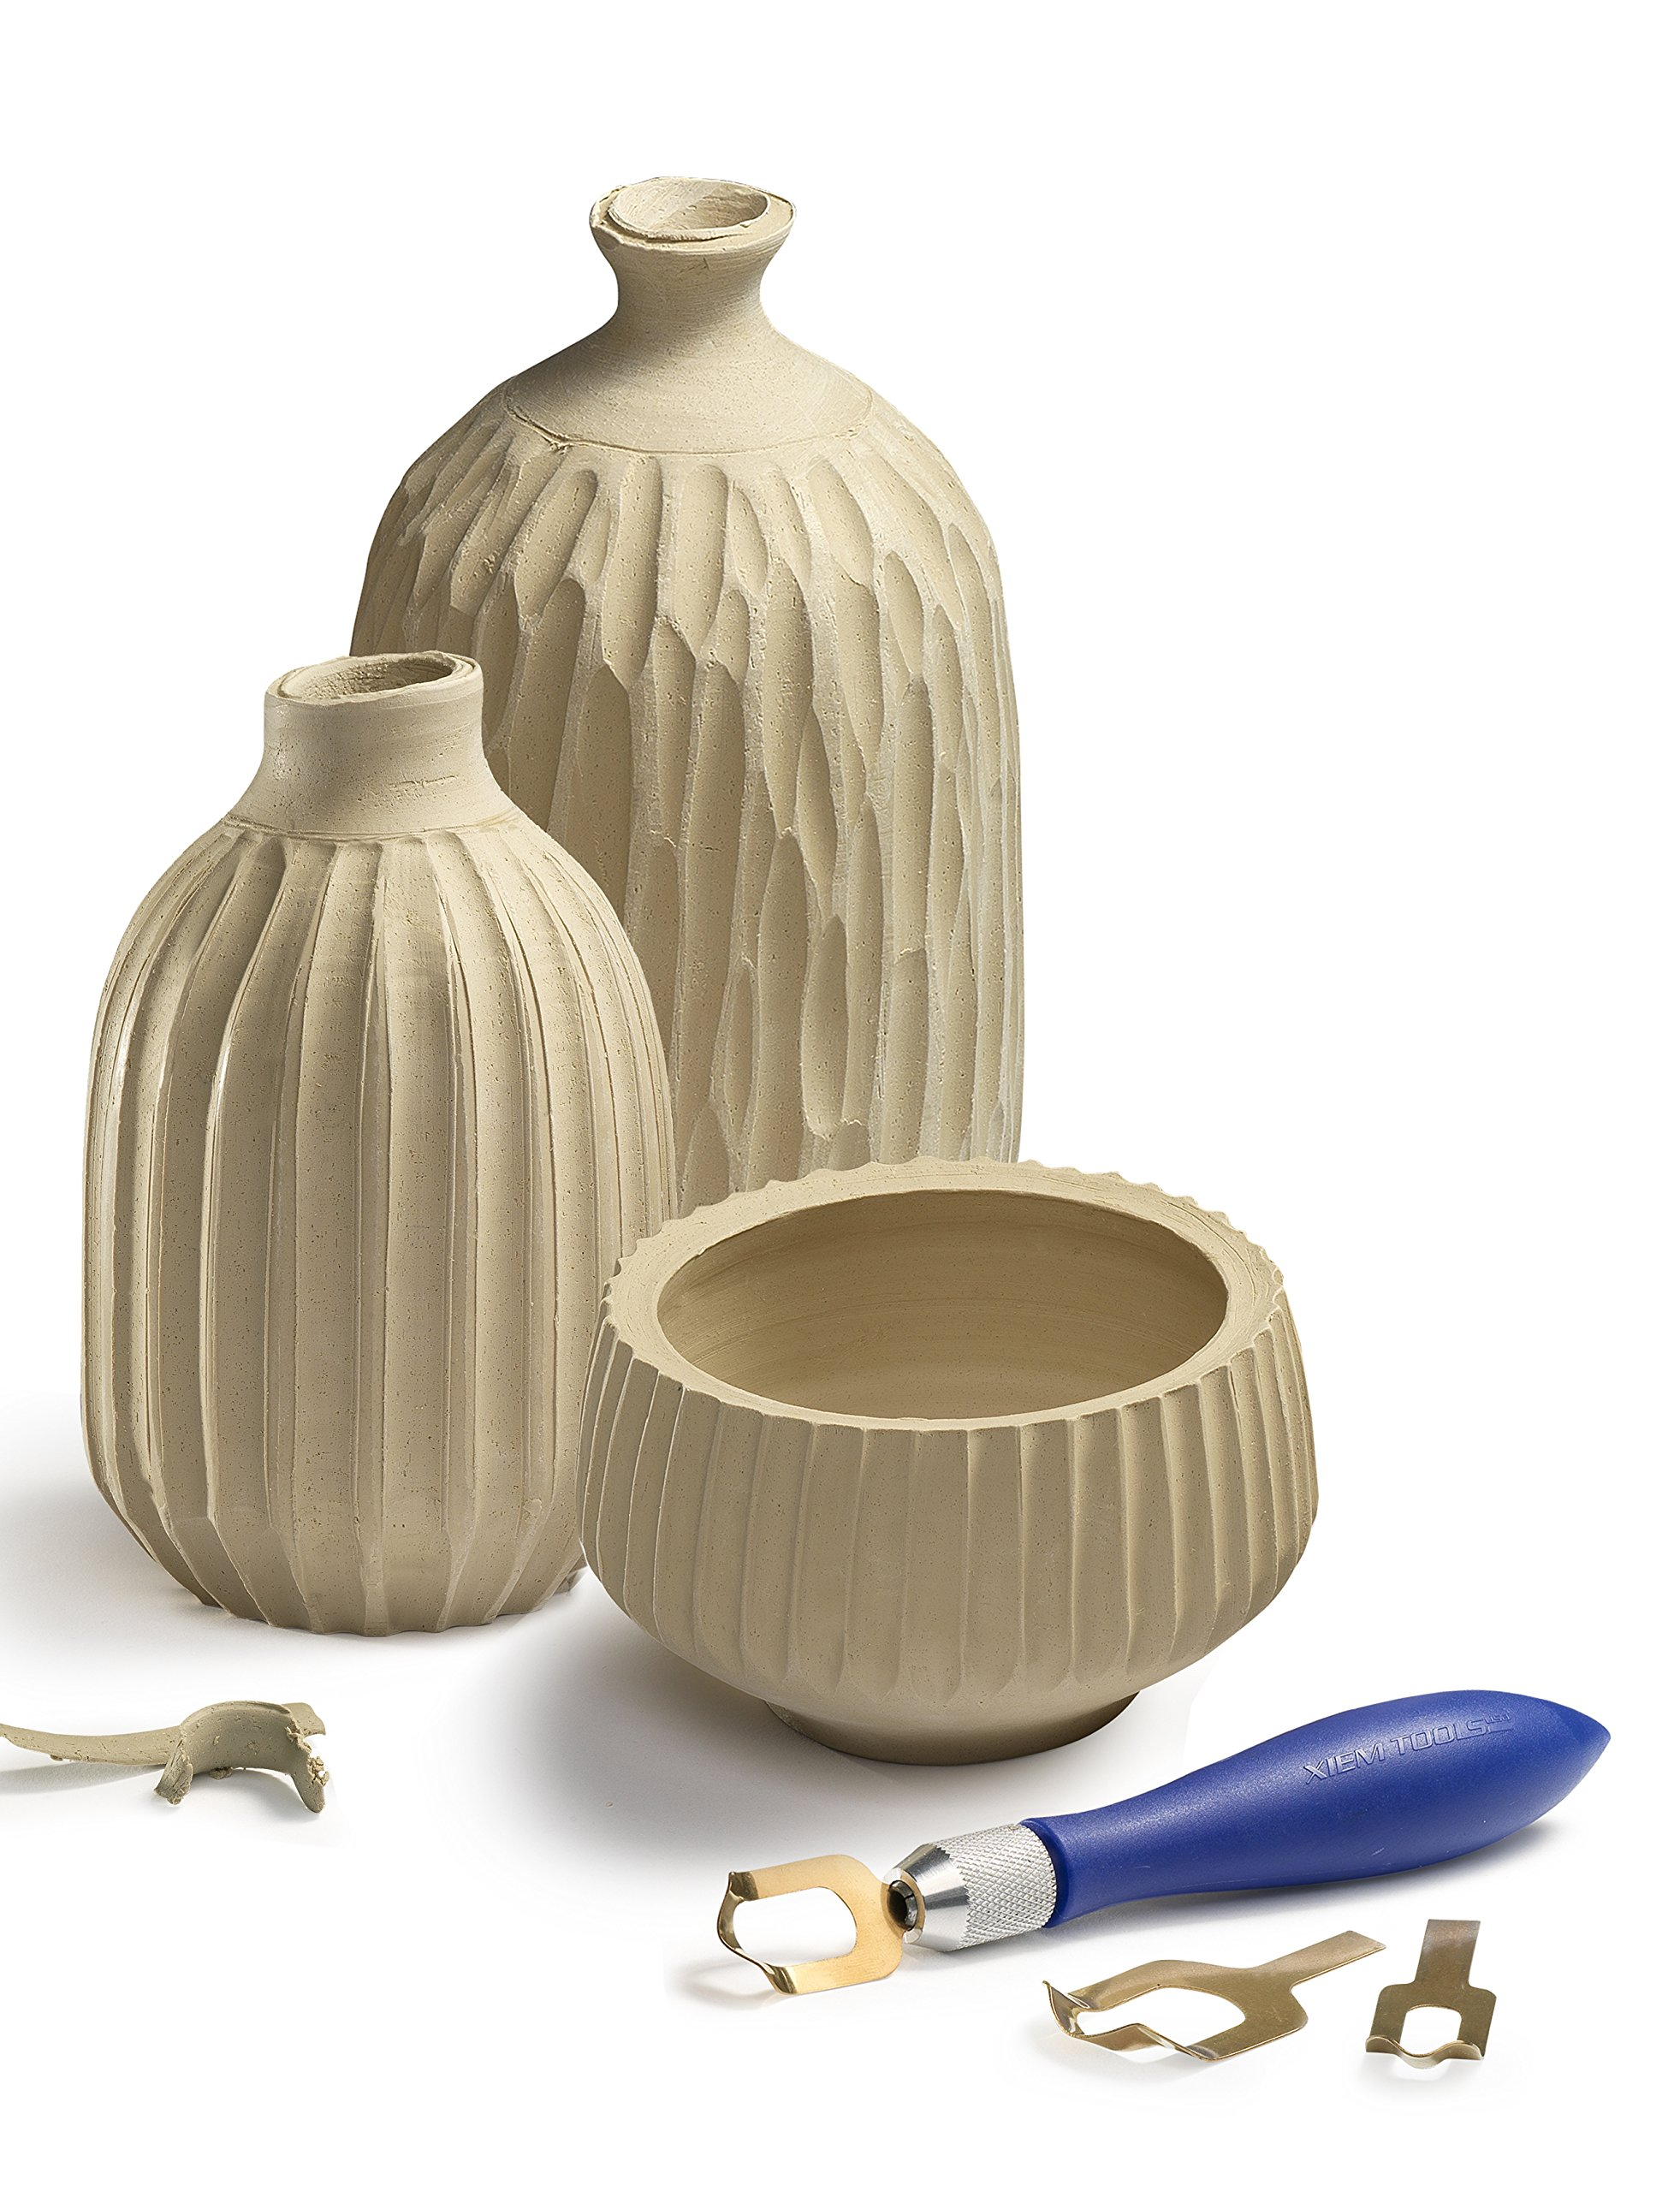 Xiem Tools USA Fluting Tool Set for Clay and Ceramics by XIEM (Image #1)